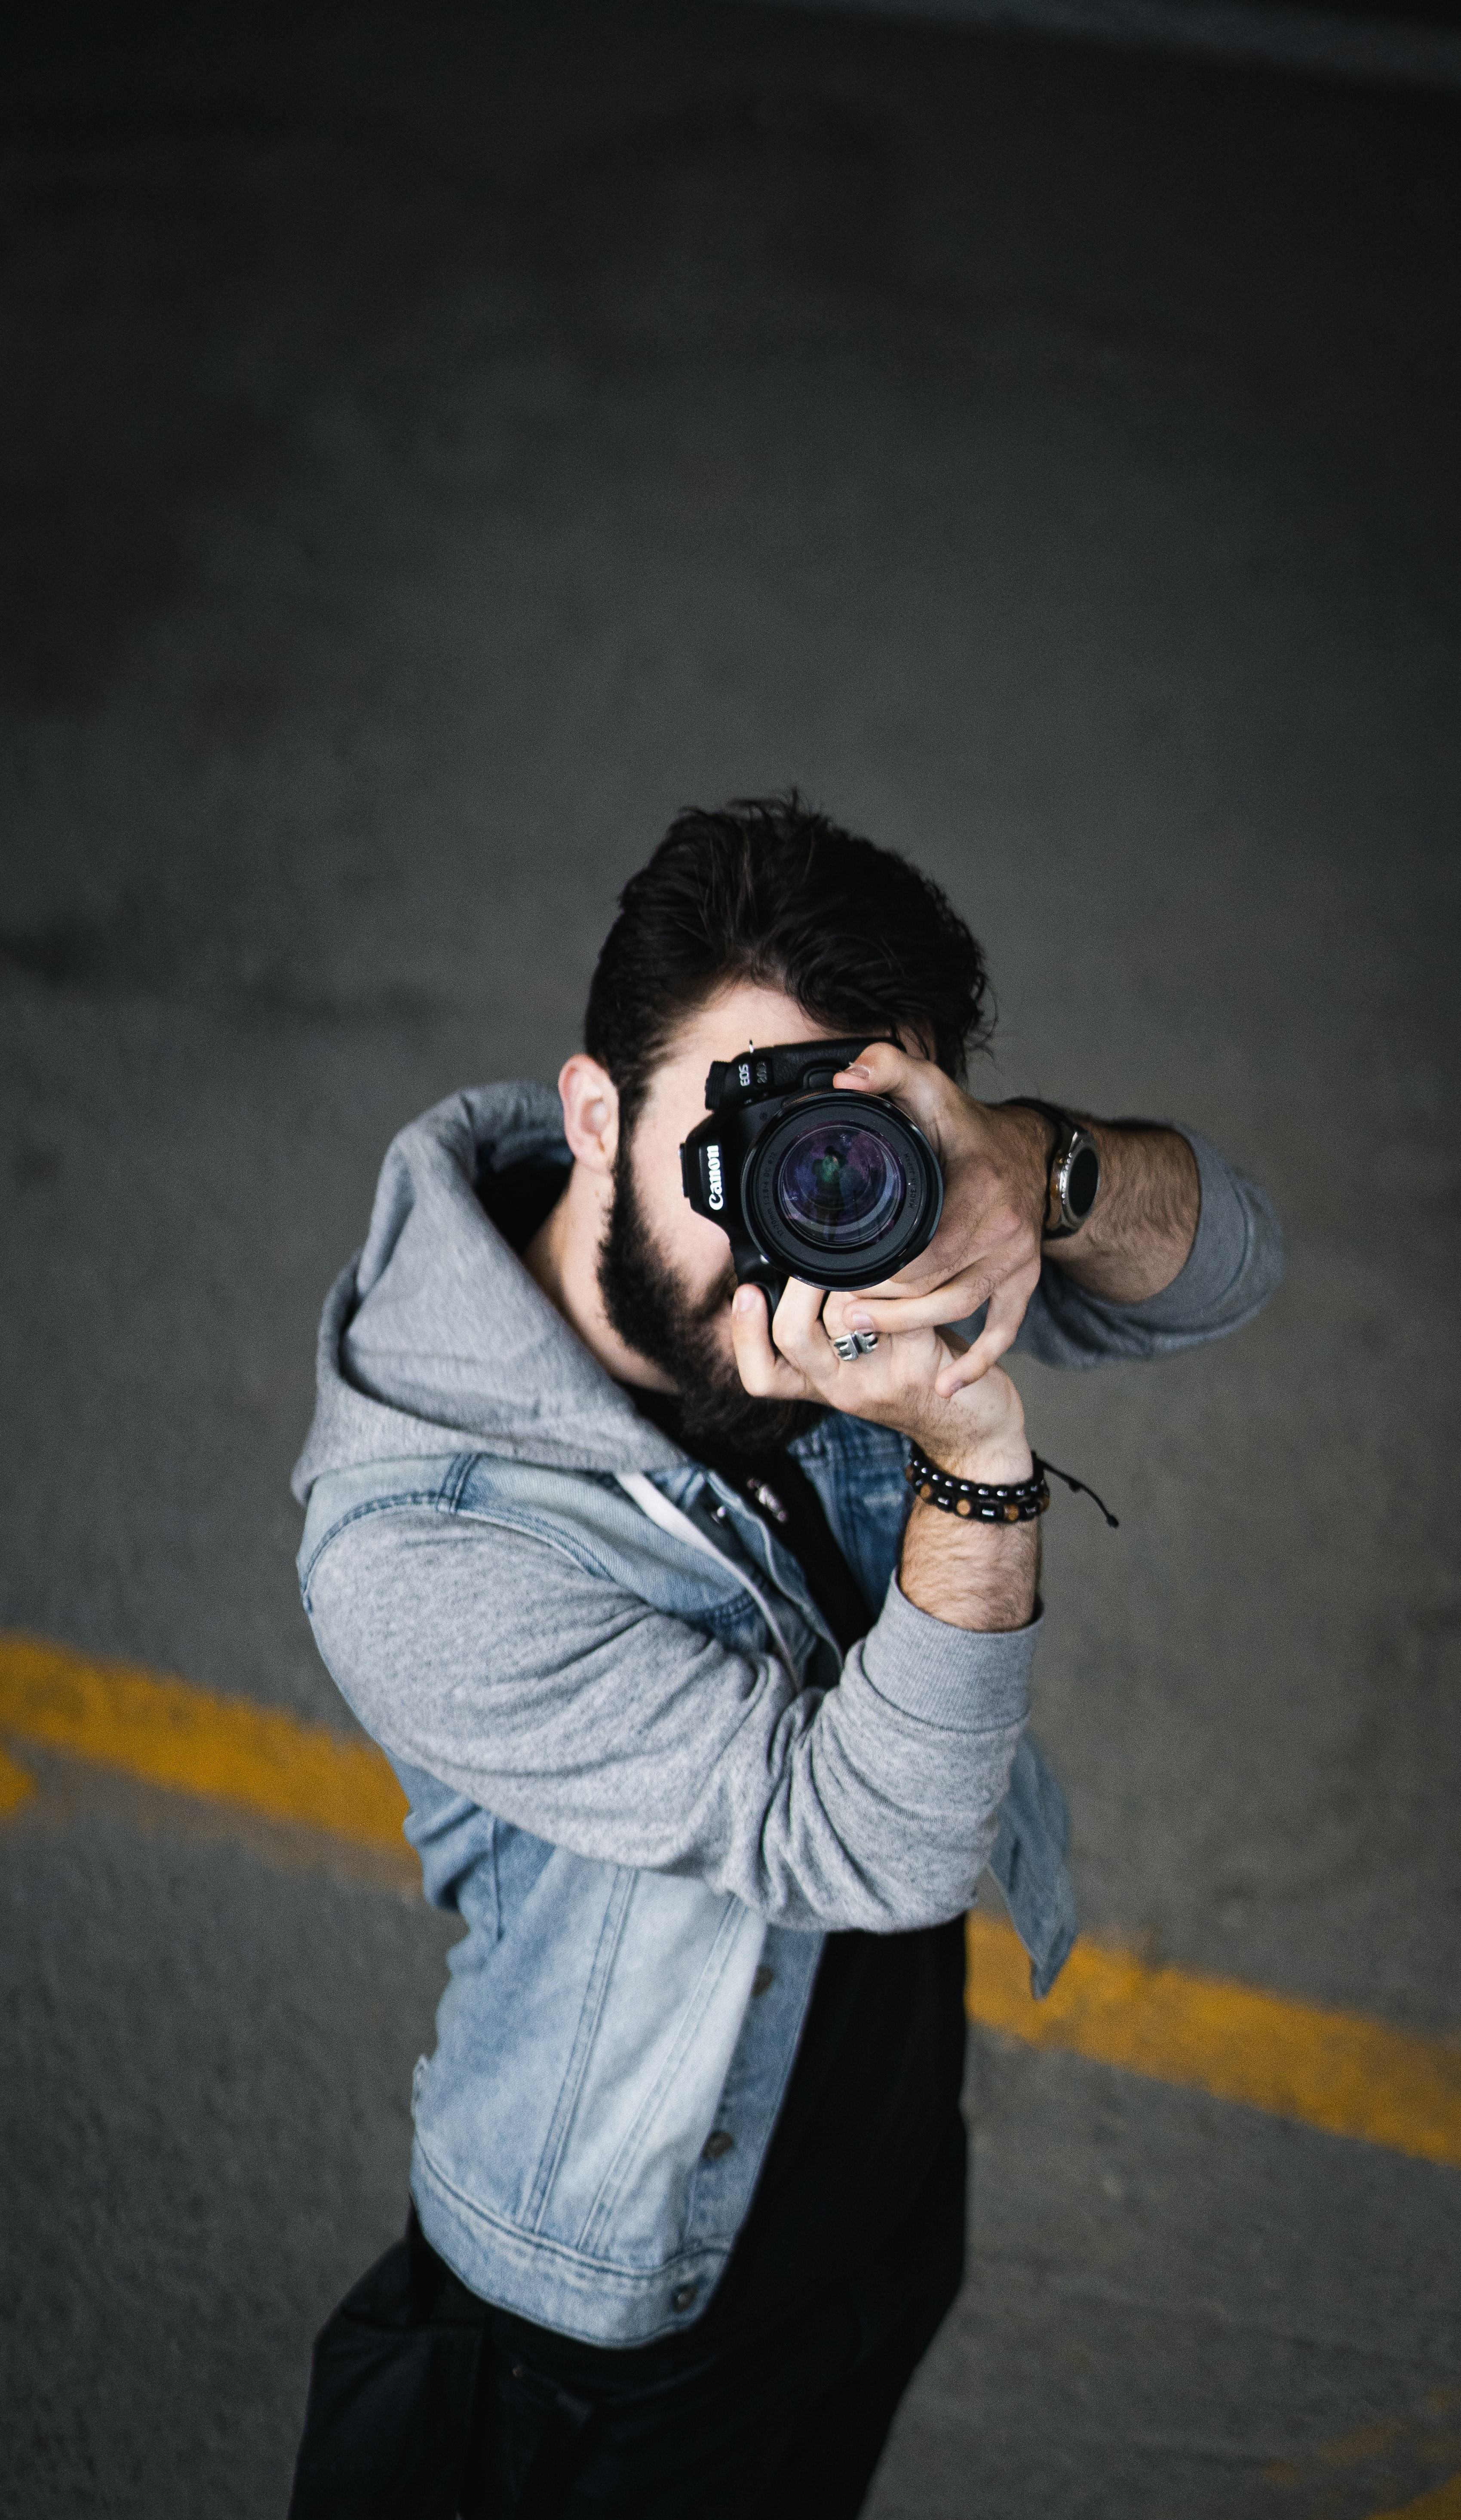 111627 Screensavers and Wallpapers Lens for phone. Download Miscellanea, Miscellaneous, Human, Person, Lens, Photographer, Shooting, Survey, Camera pictures for free